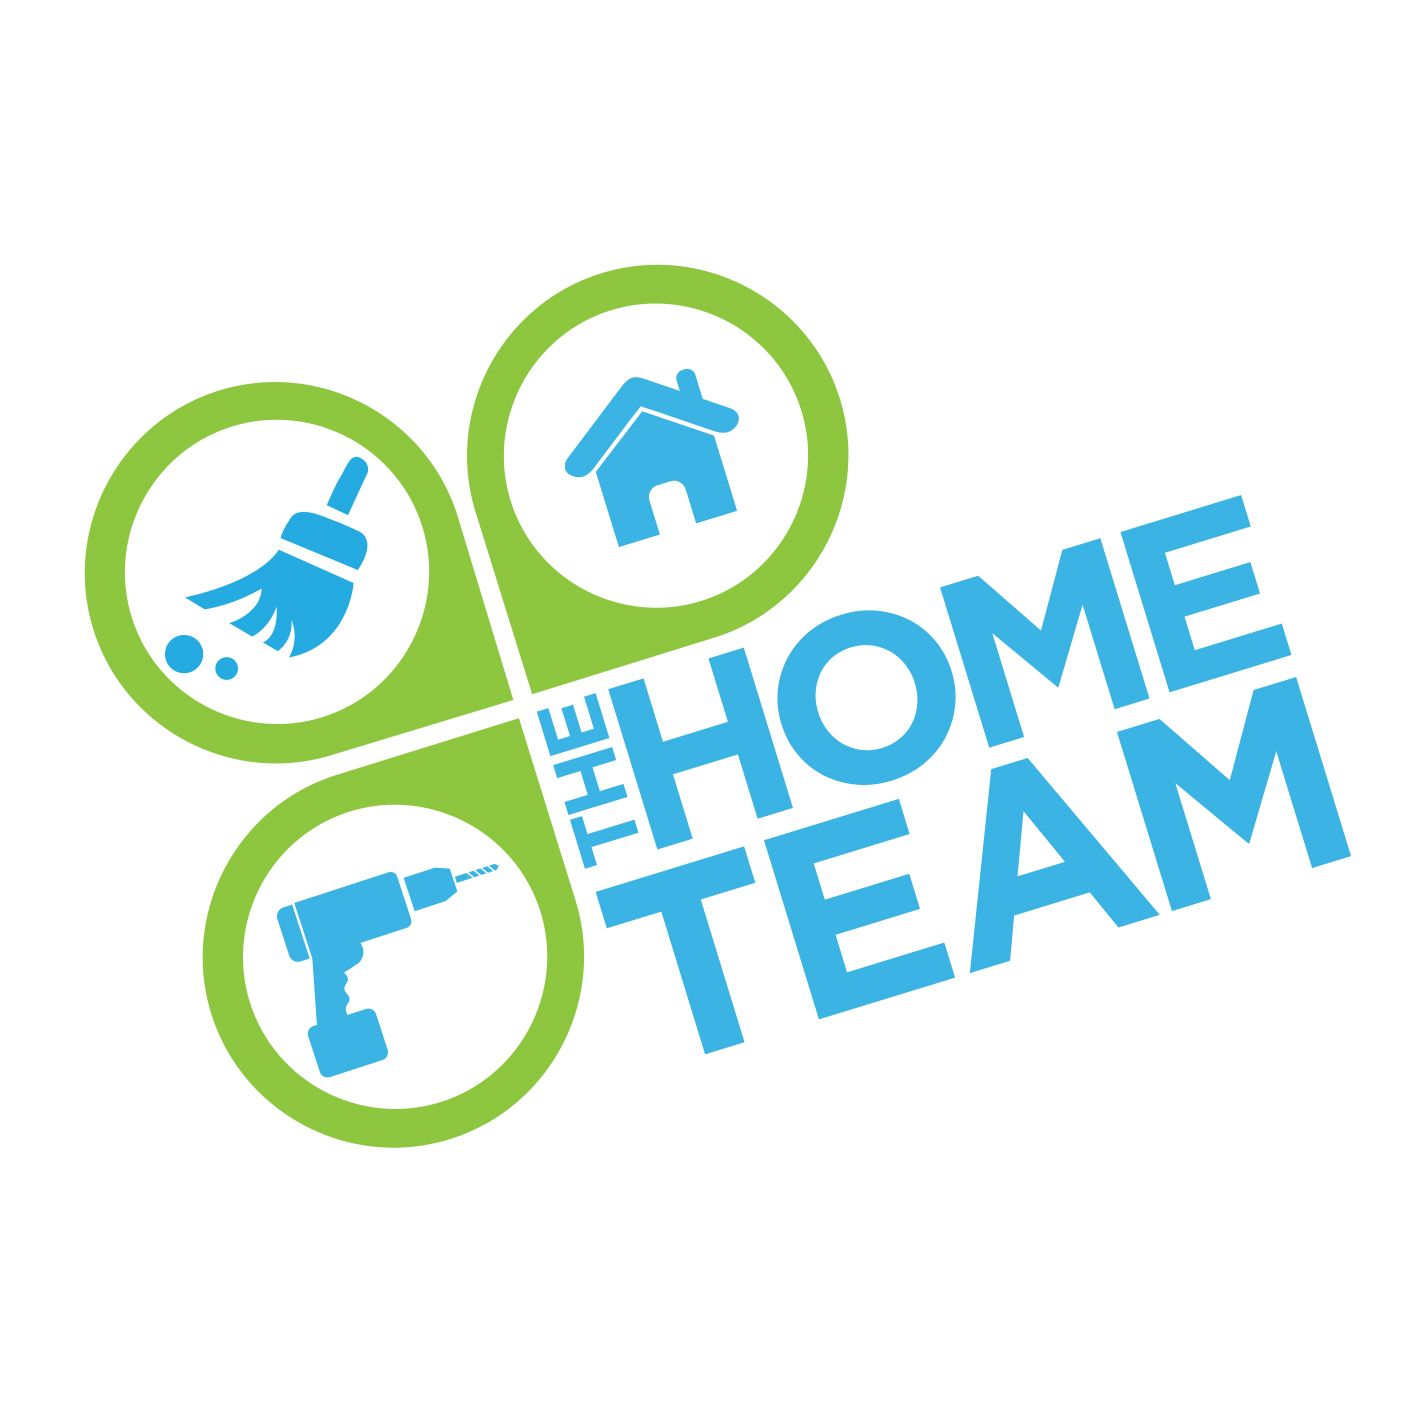 cleaning services logo google search logo icon pinterest rh pinterest co uk cleaning services logo design cleaning services logo design